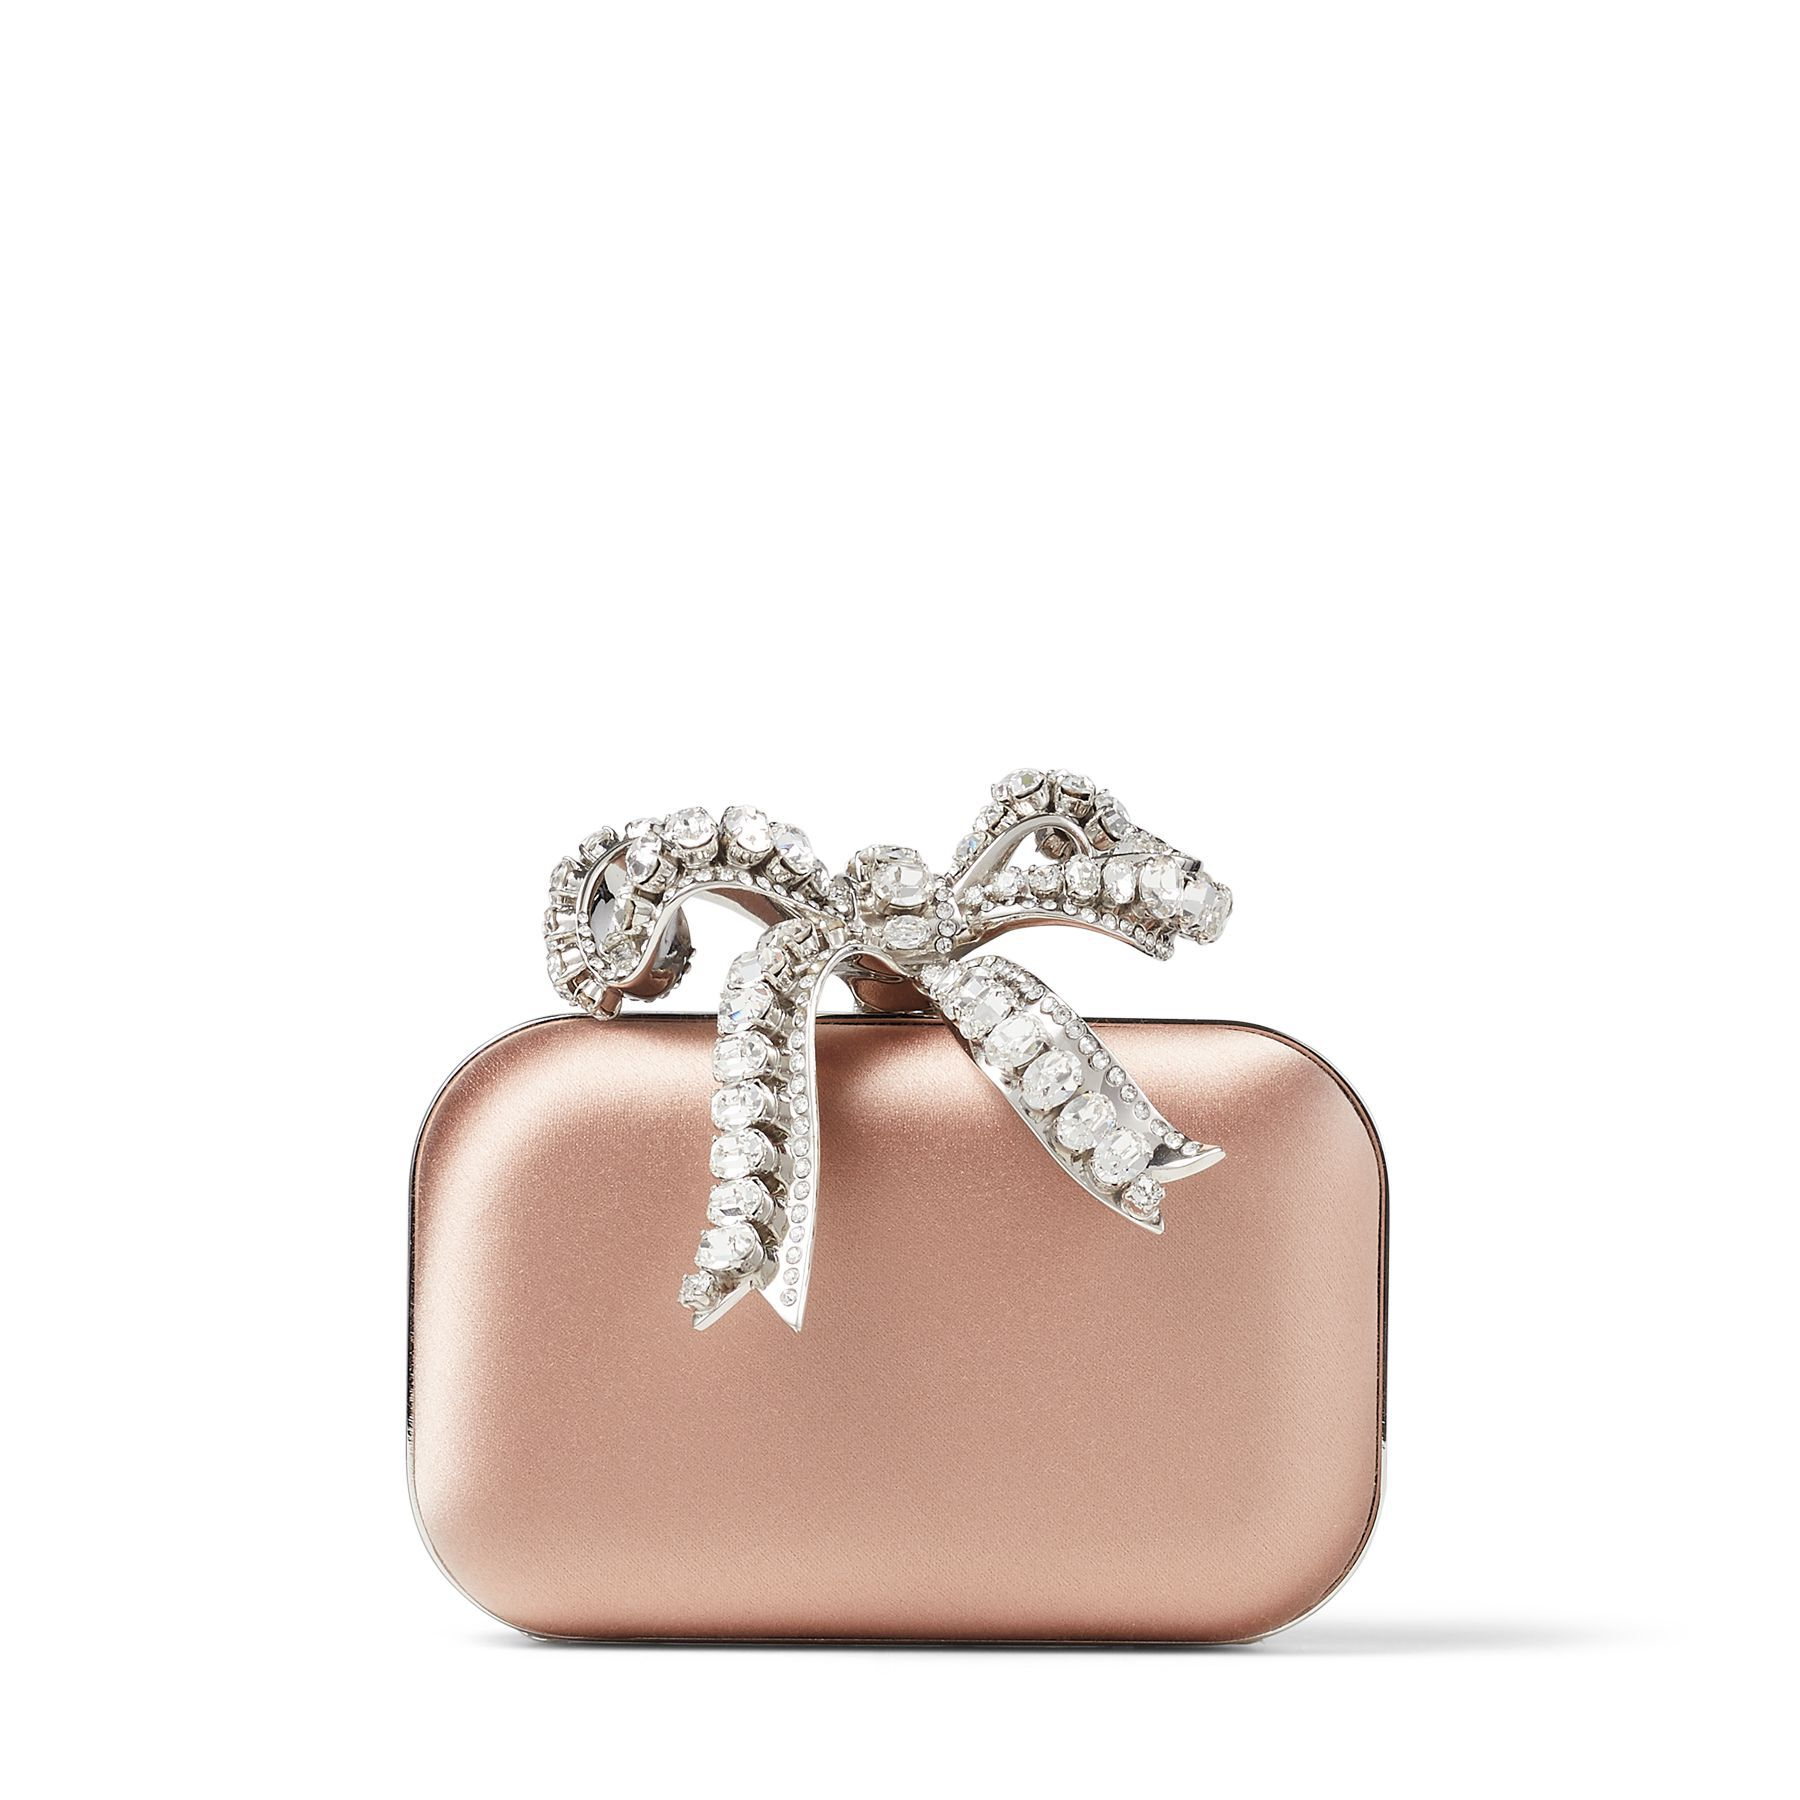 MICRO CLOUD - Ballet Pink Satin Mini Bag with Crystal Bow Clasp